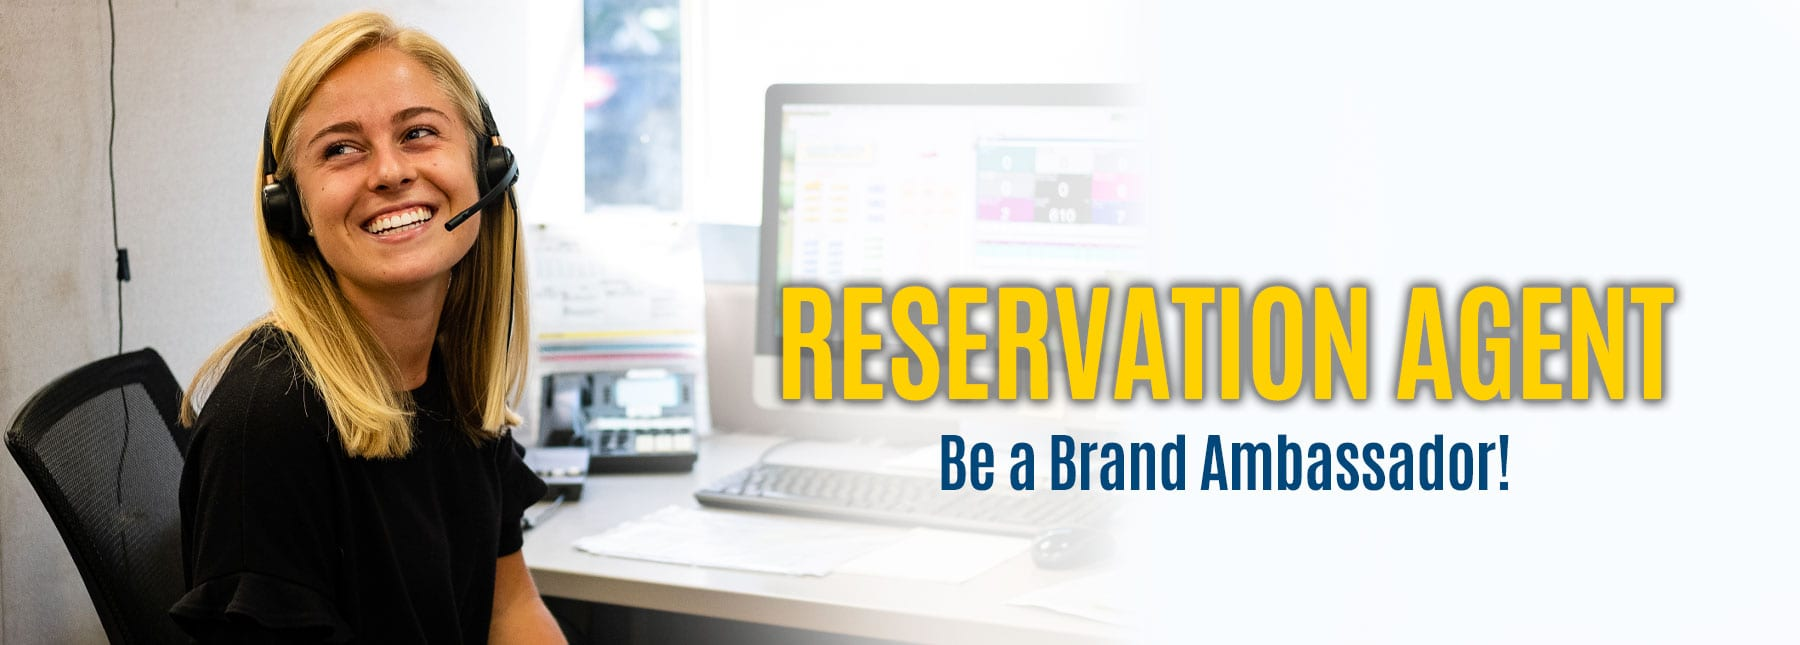 Reservation Agent 20210706 1800x645